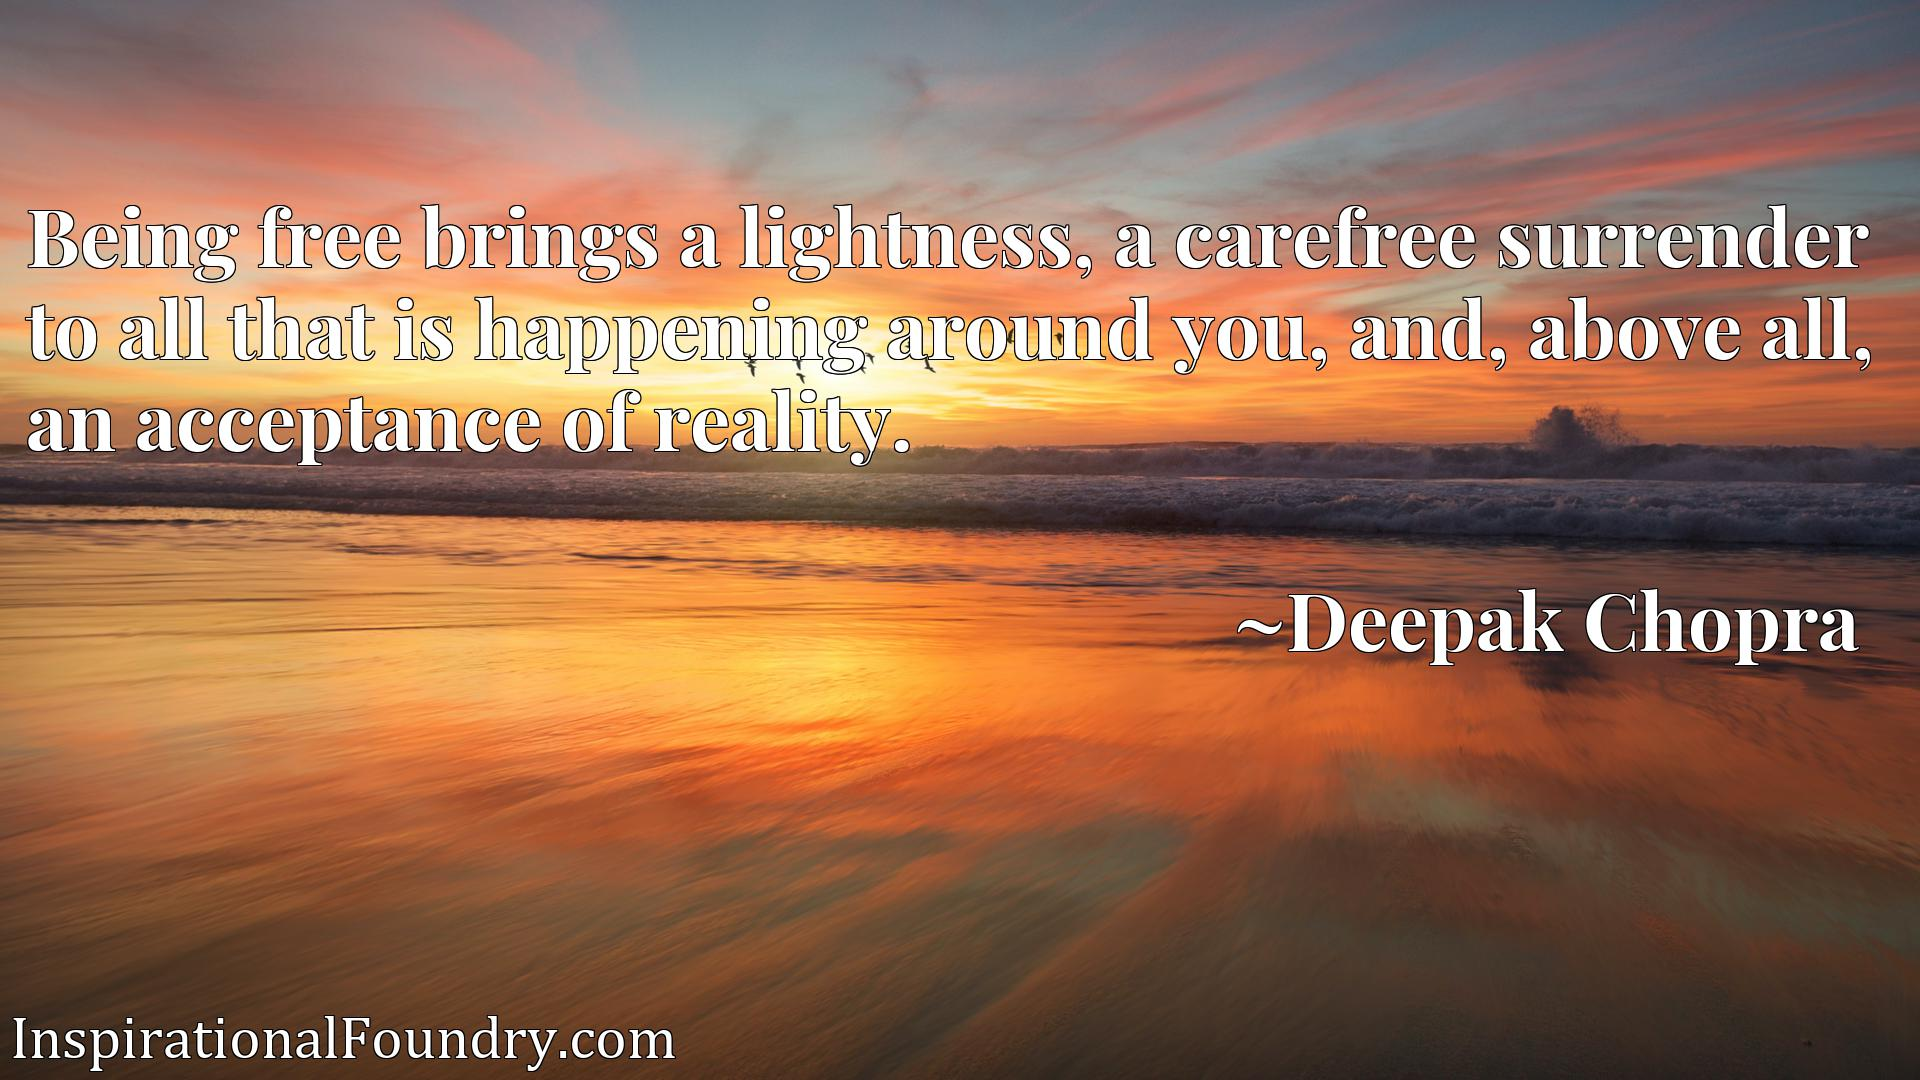 Quote Picture :Being free brings a lightness, a carefree surrender to all that is happening around you, and, above all, an acceptance of reality.